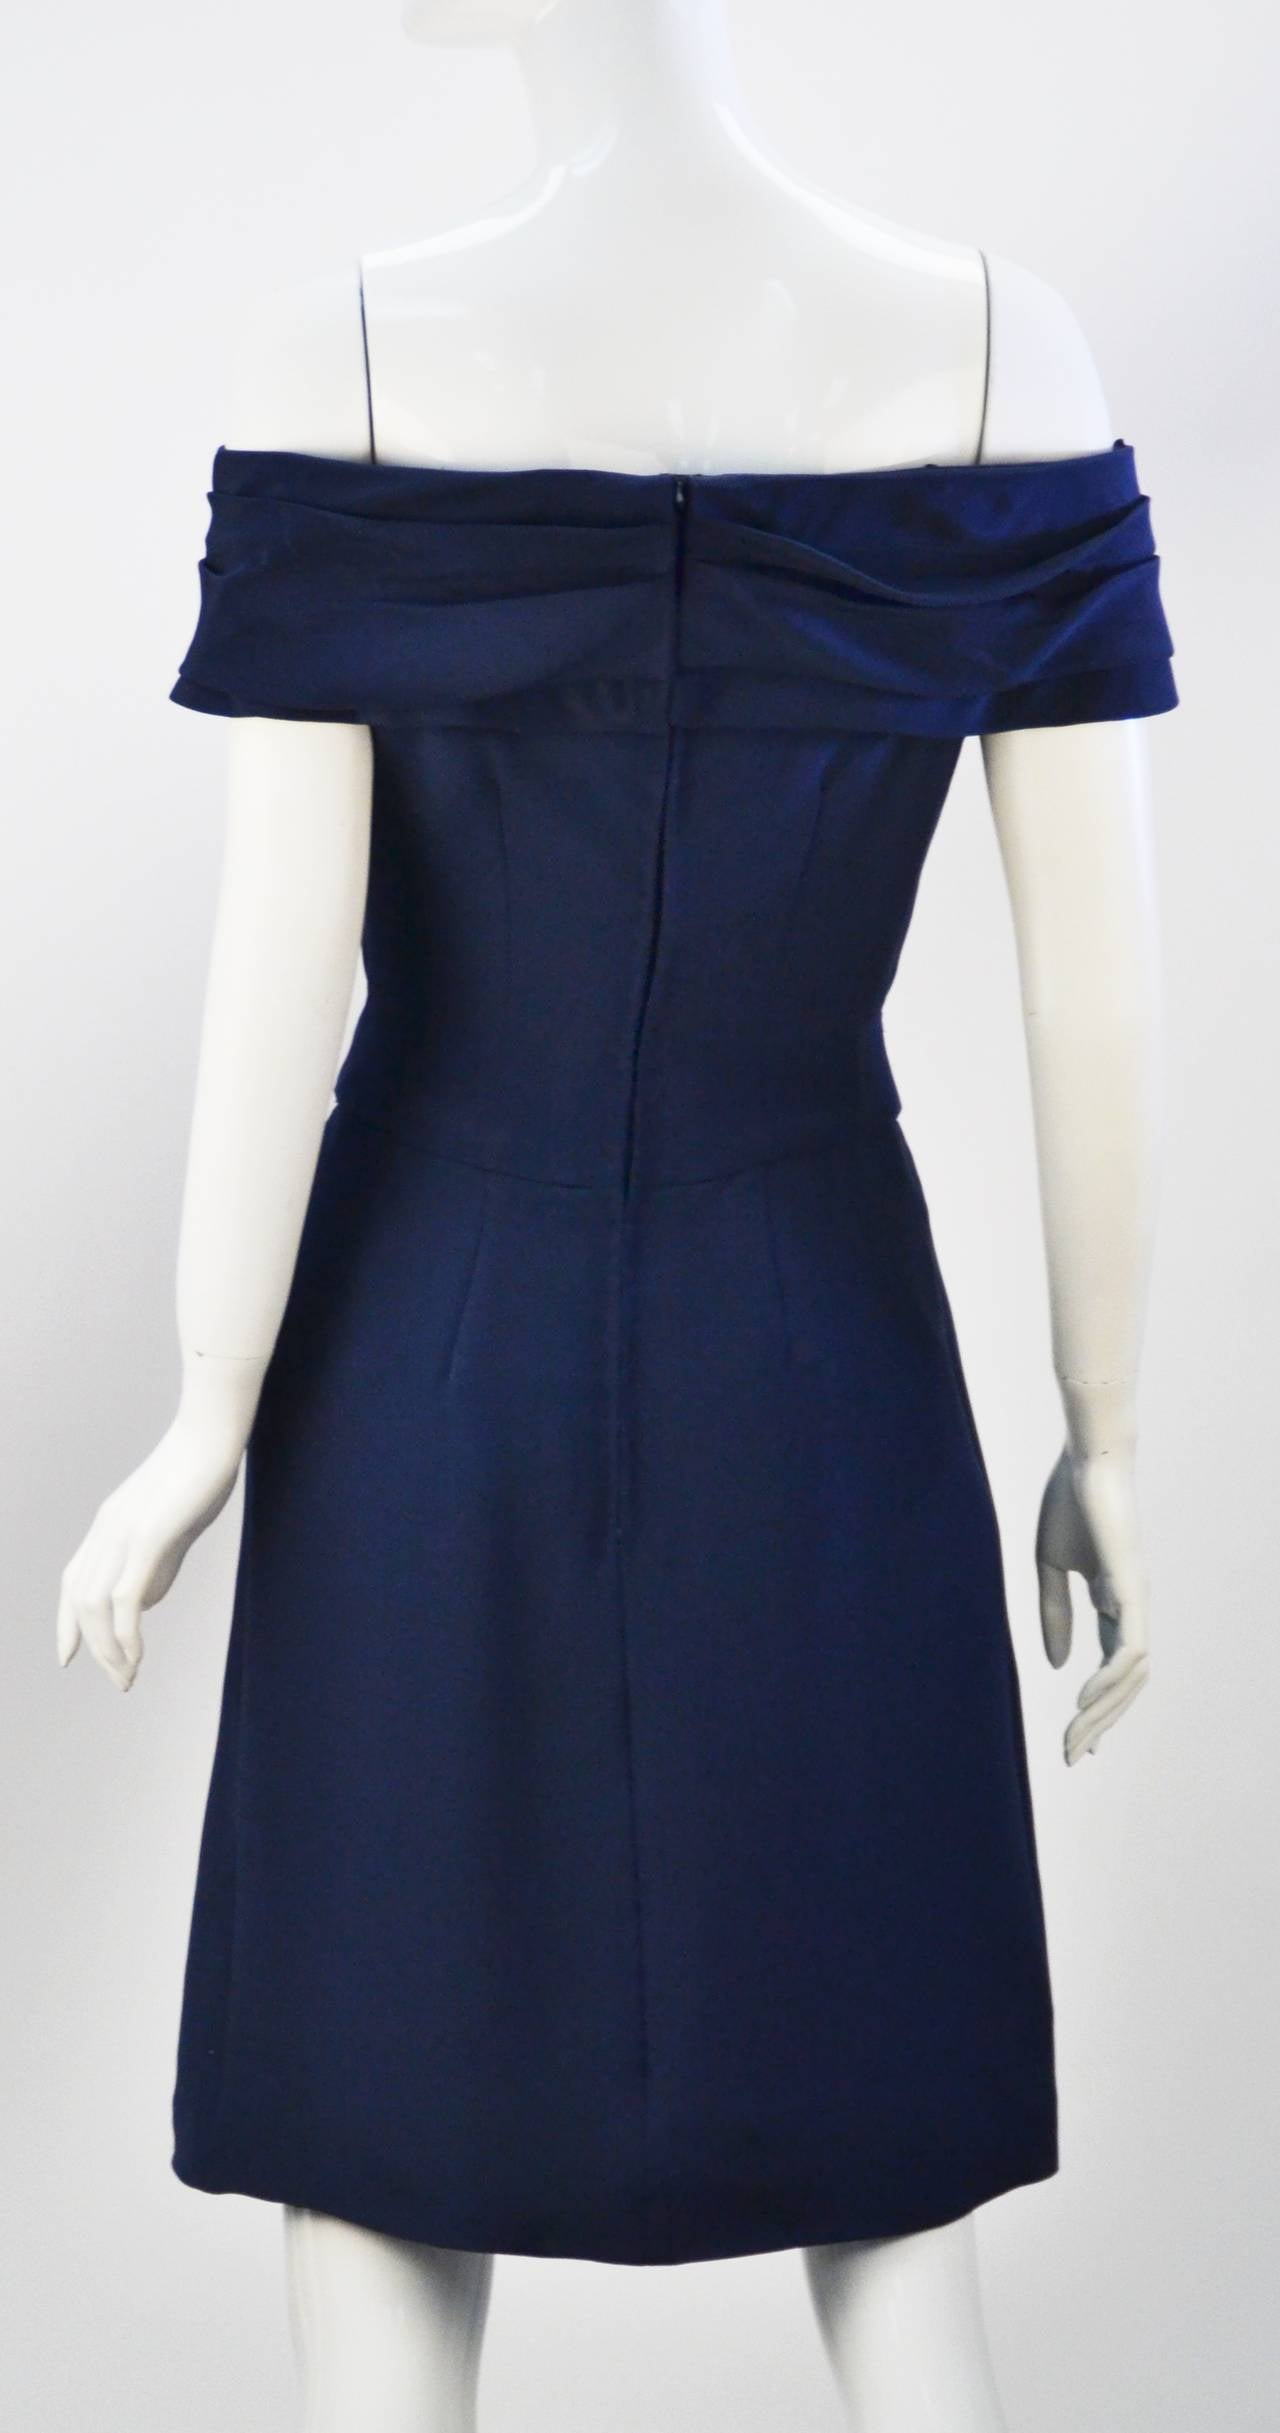 Absolutely beautiful vintage Scaasi navy silk crepe de chine dress!  Surprise front pockets hidden in front pleating.  Perfect bow accent at waist. Draped edge of shoulder or of shoulder neck line shows off beautiful décolleté. Interlined skirt.